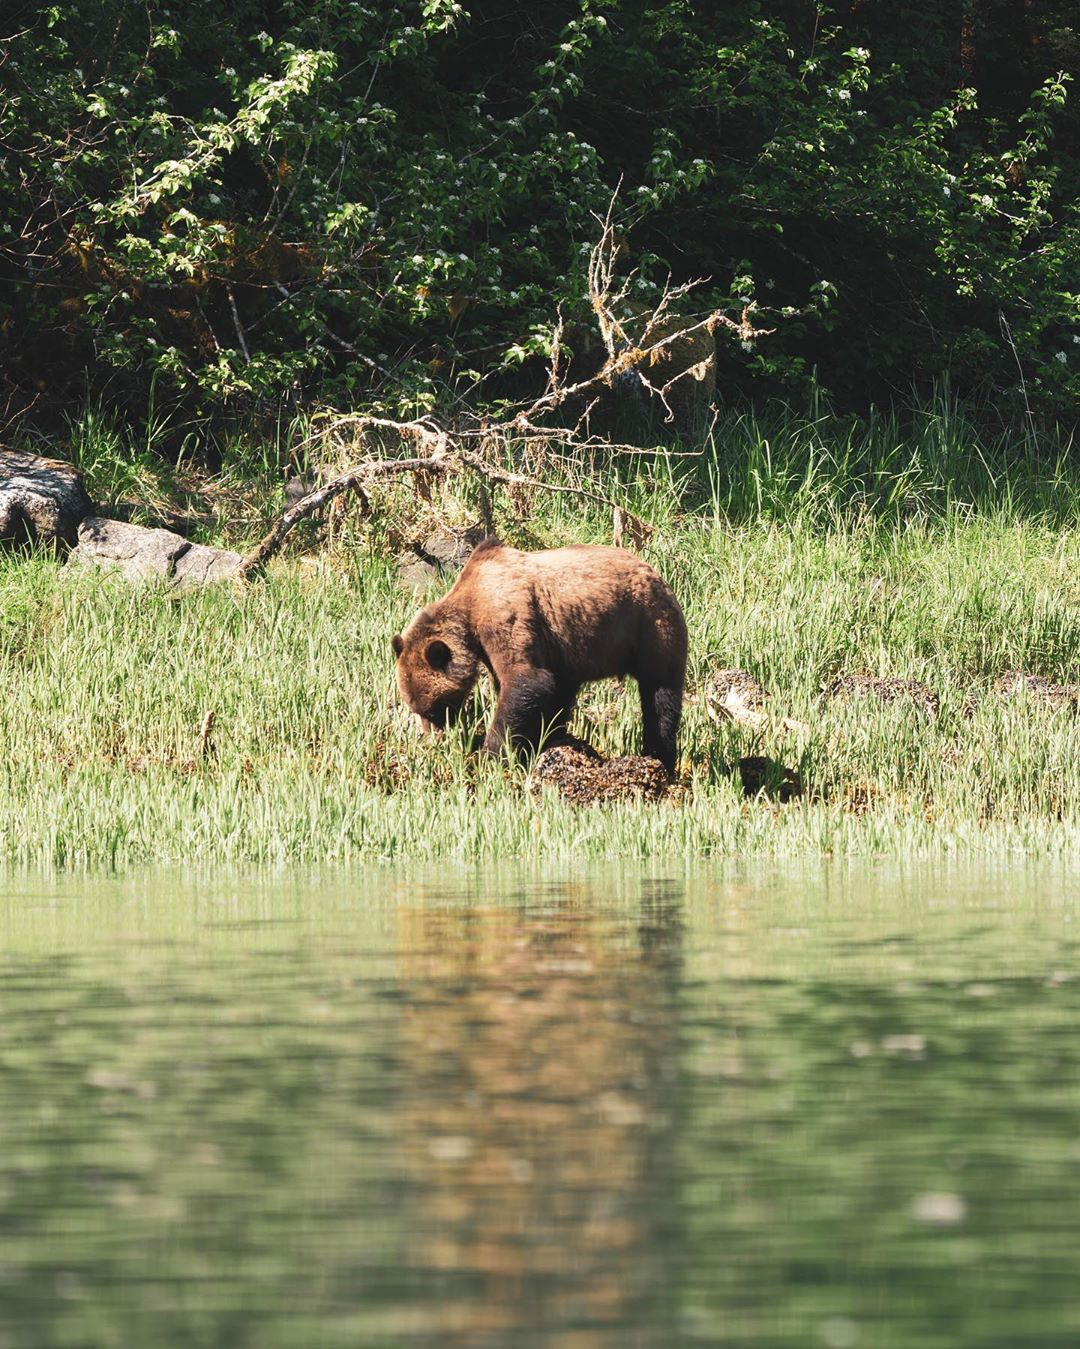 Still water in the fore ground with a grizzly bear standing on the grassy shore in the midground and forest behind.